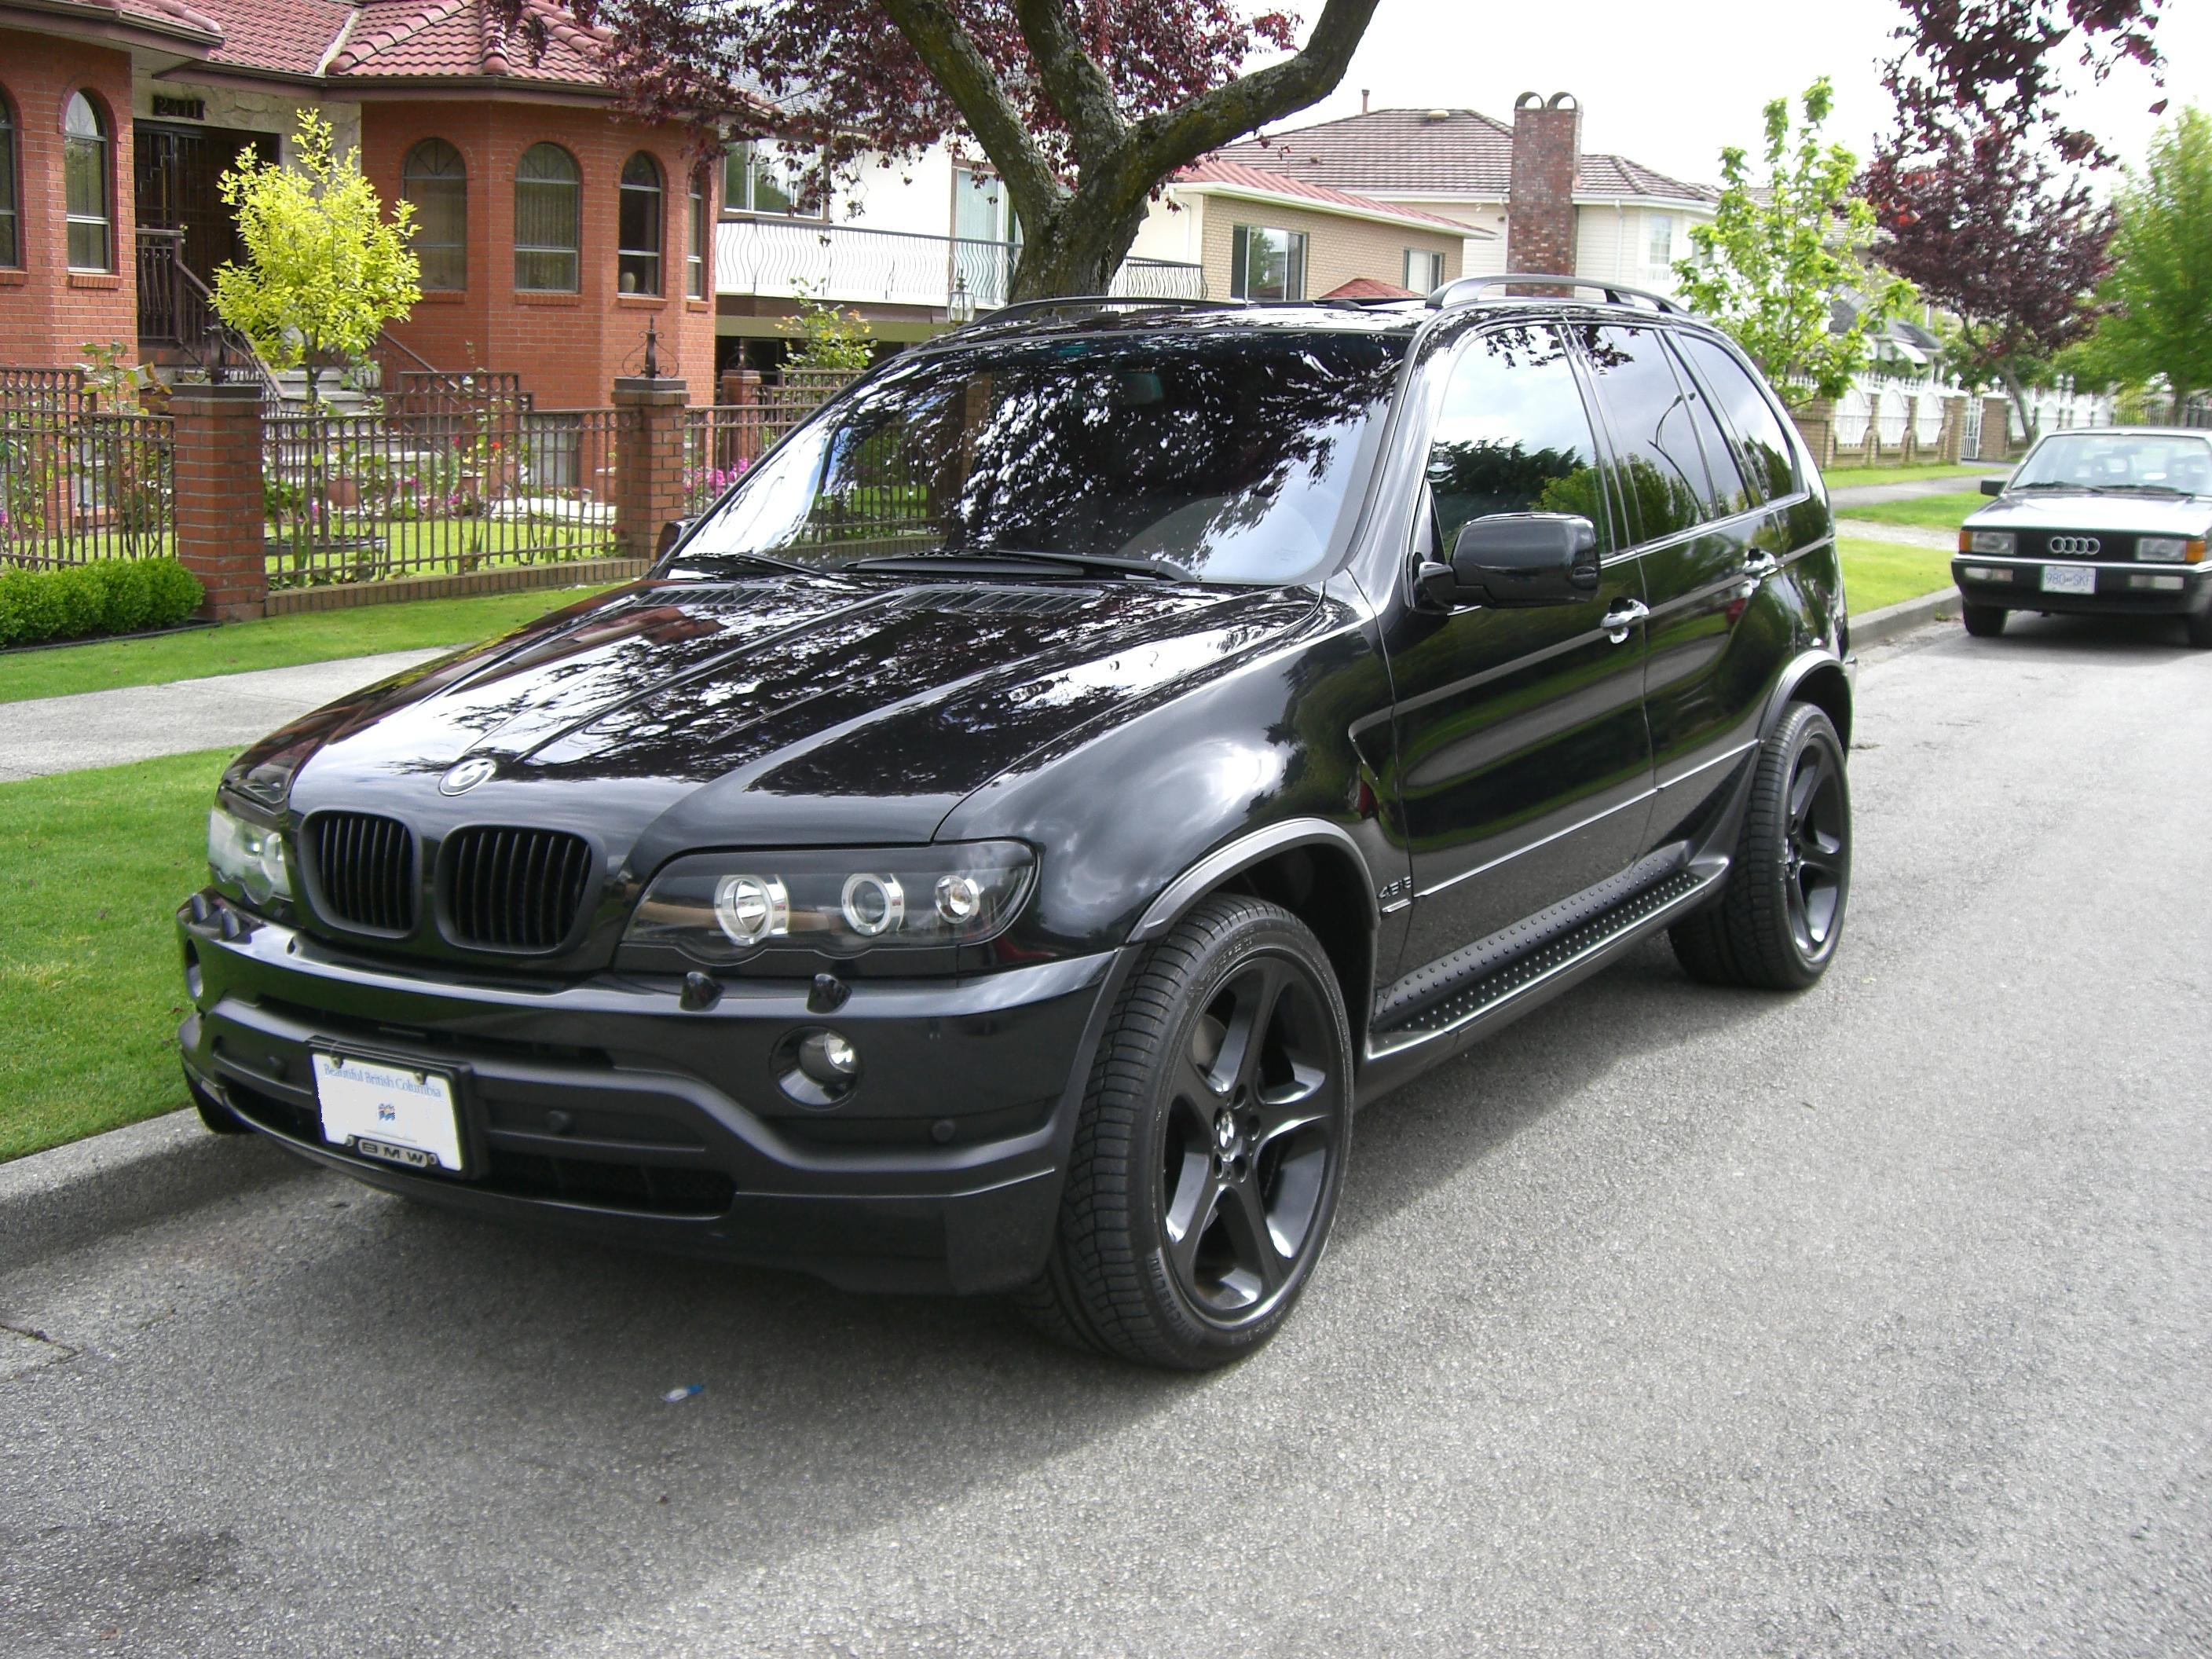 rexshop 2003 bmw sport utility 4d specs photos modification info at cardomain. Black Bedroom Furniture Sets. Home Design Ideas